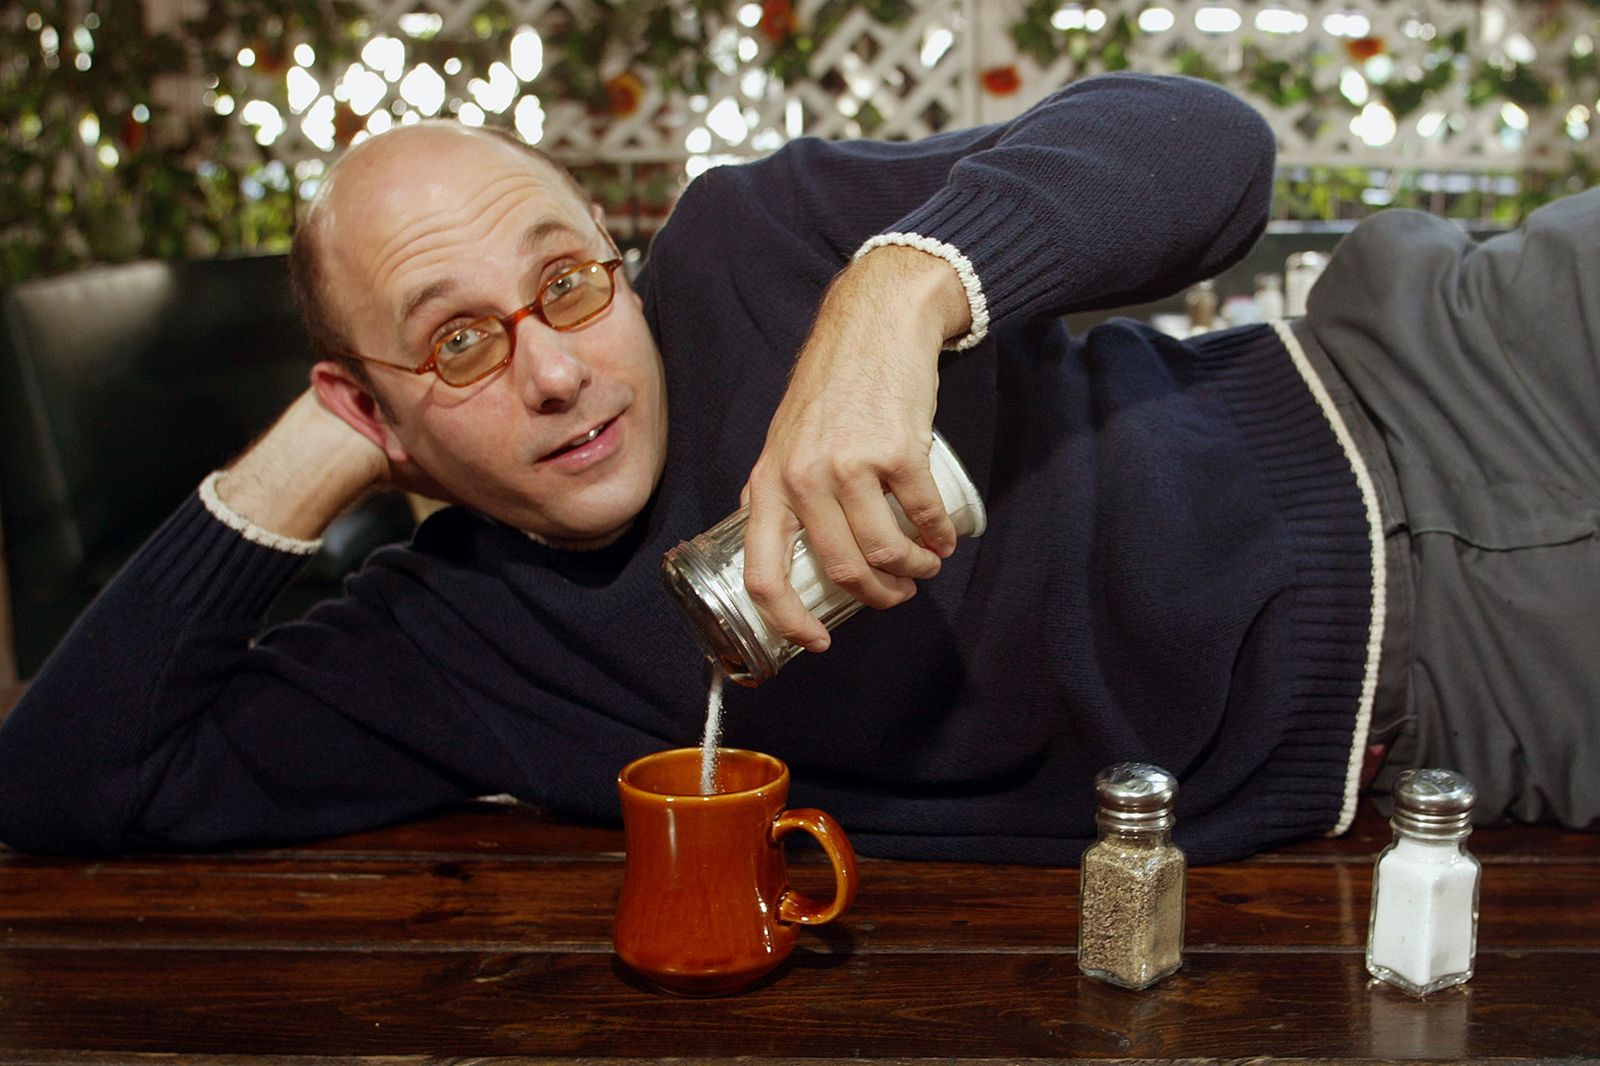 Willie Garson of Sex in the City who was having a spot of tea in Hollywood.